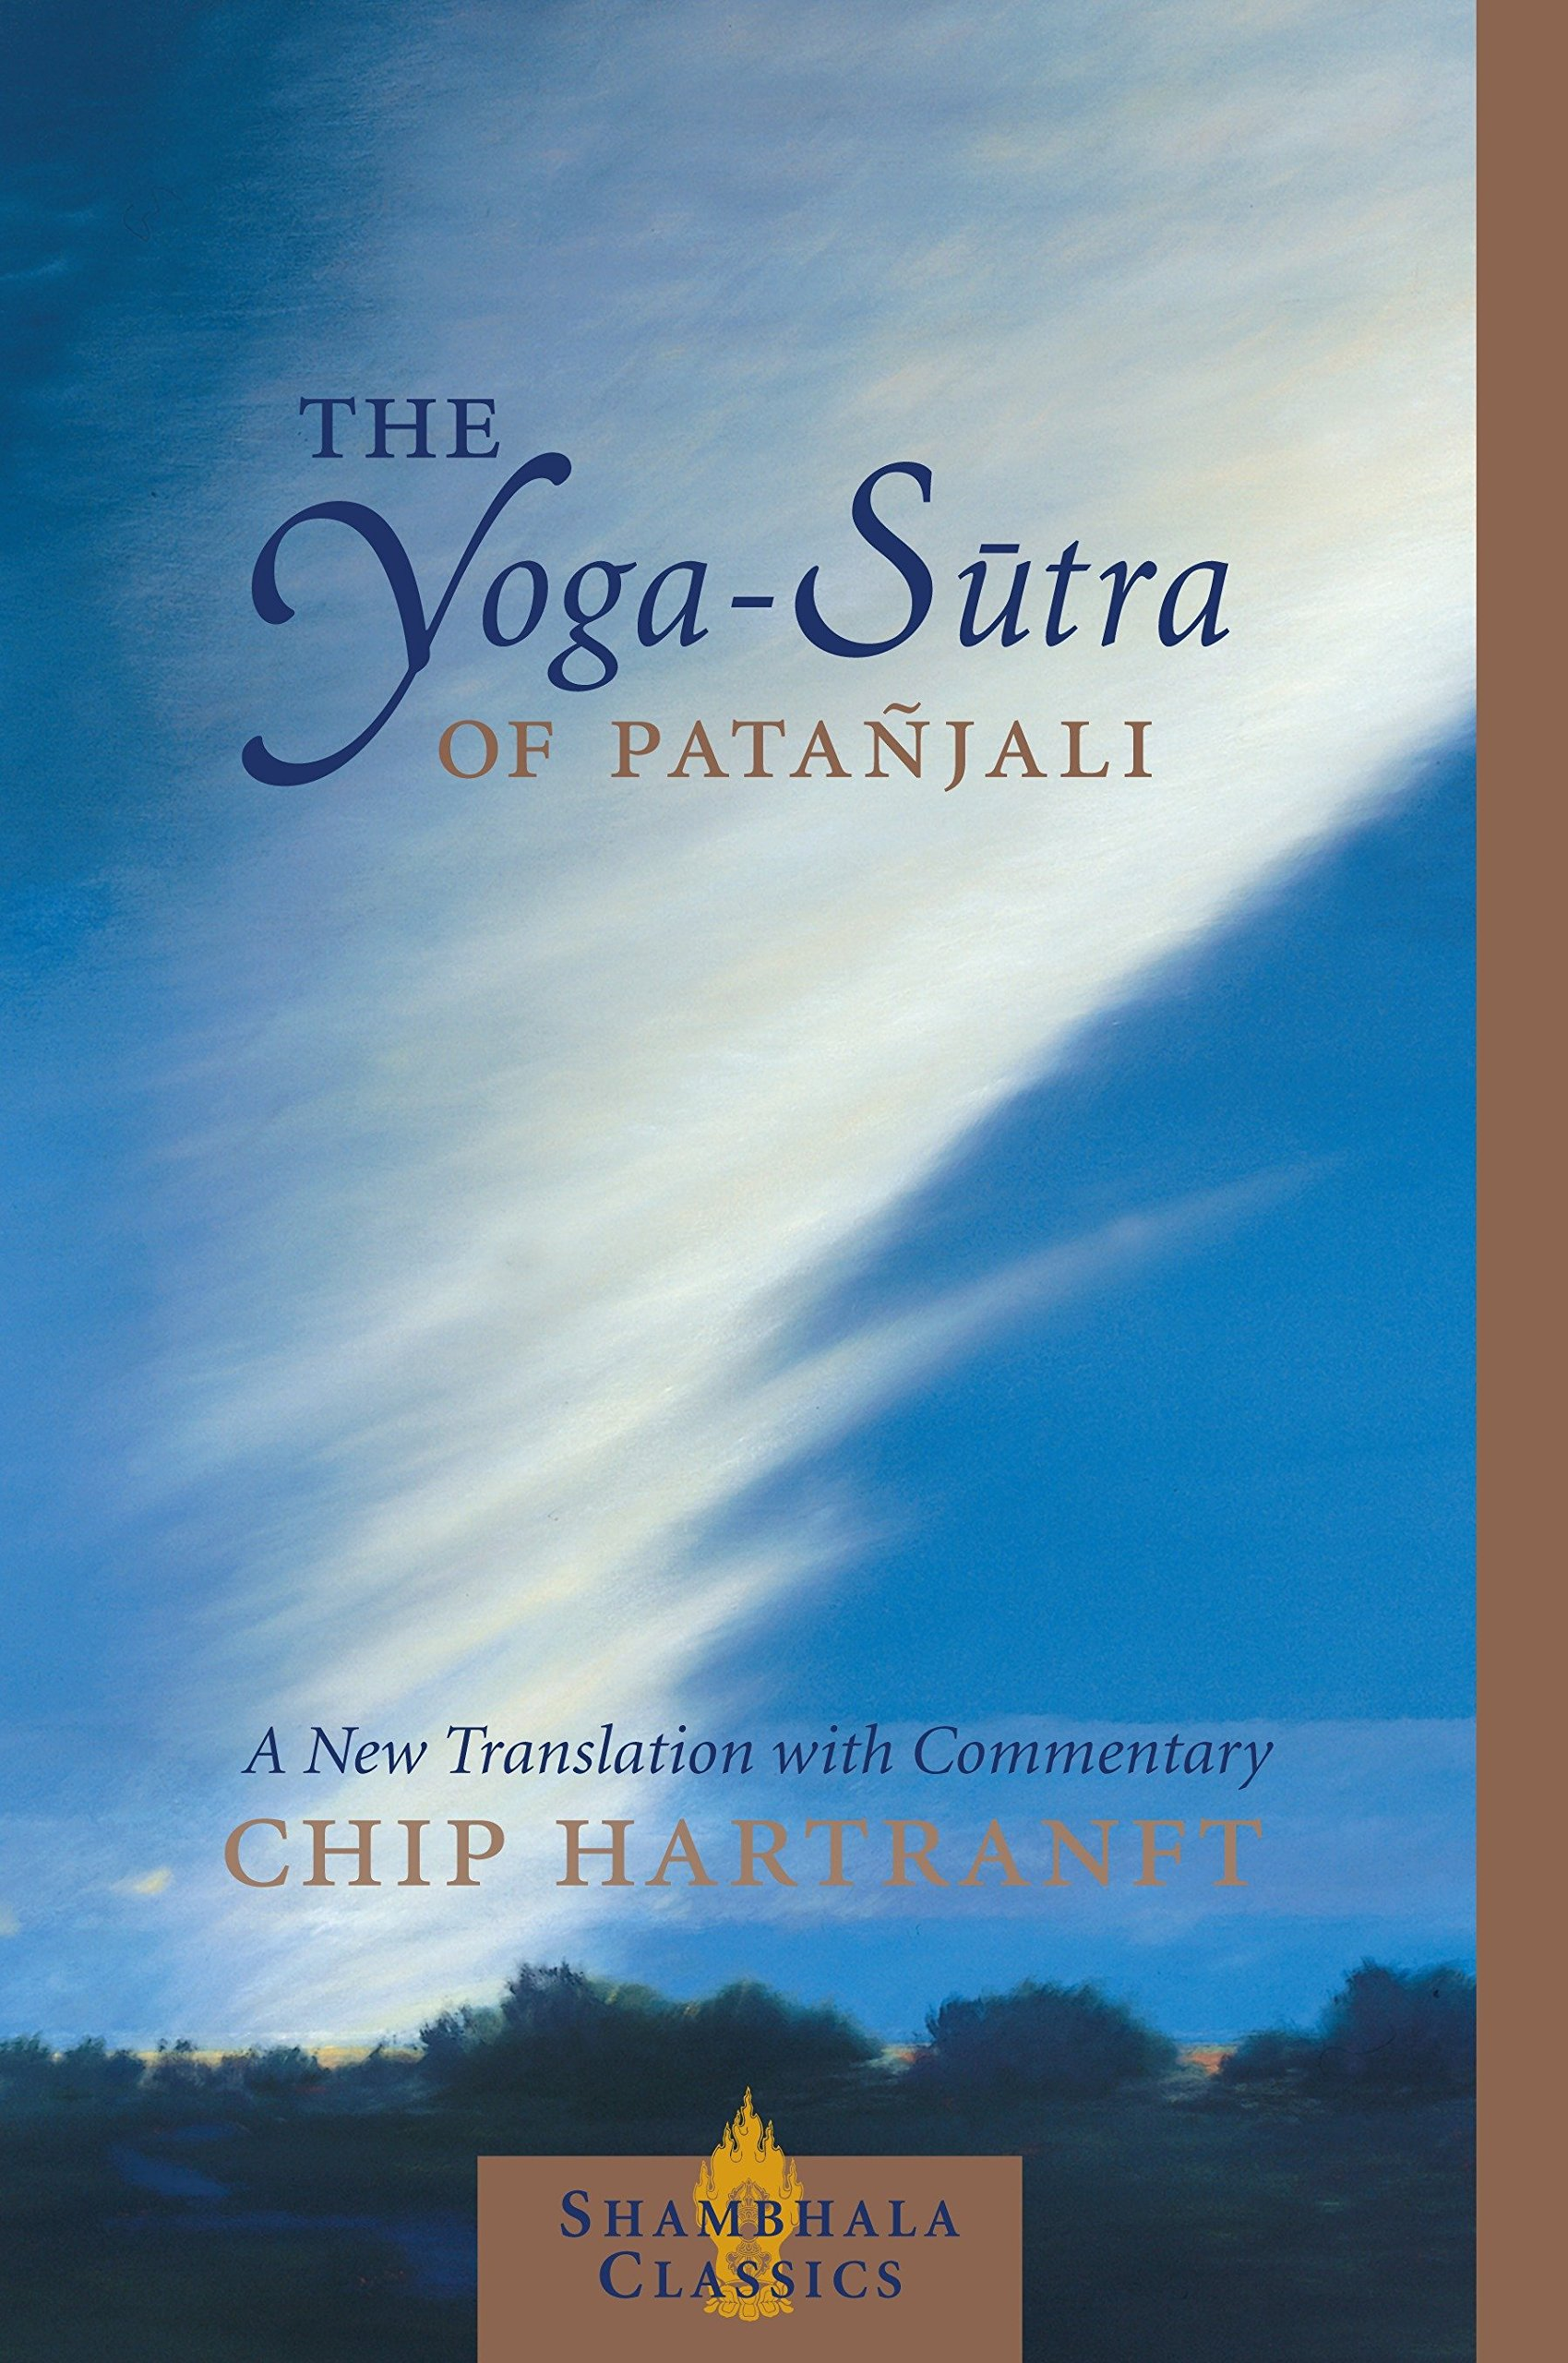 The Yoga-Sutra of Patanjali: A New Translation - In just 196 short aphorisms, this classic work of Indian philosophy spells out succinctly how the mind works, and how it is possible to use the mind to attain liberation. Compiled in the second or third century CE, the Yoga-Sutra is a road map of human consciousness—and a particularly helpful guide to the mind states one encounters in meditation, yoga, and other spiritual practices. It expresses the truths of the human condition with great eloquence: how we know what we know, why we suffer, and how we can discover the way beyond suffering.Chip Hartranft's fresh translation and extensive, lucid commentary bring the text beautifully to life. He also provides useful auxiliary materials, including an afterword on the legacy of the Yoga-Sutra and its relevance for us today.